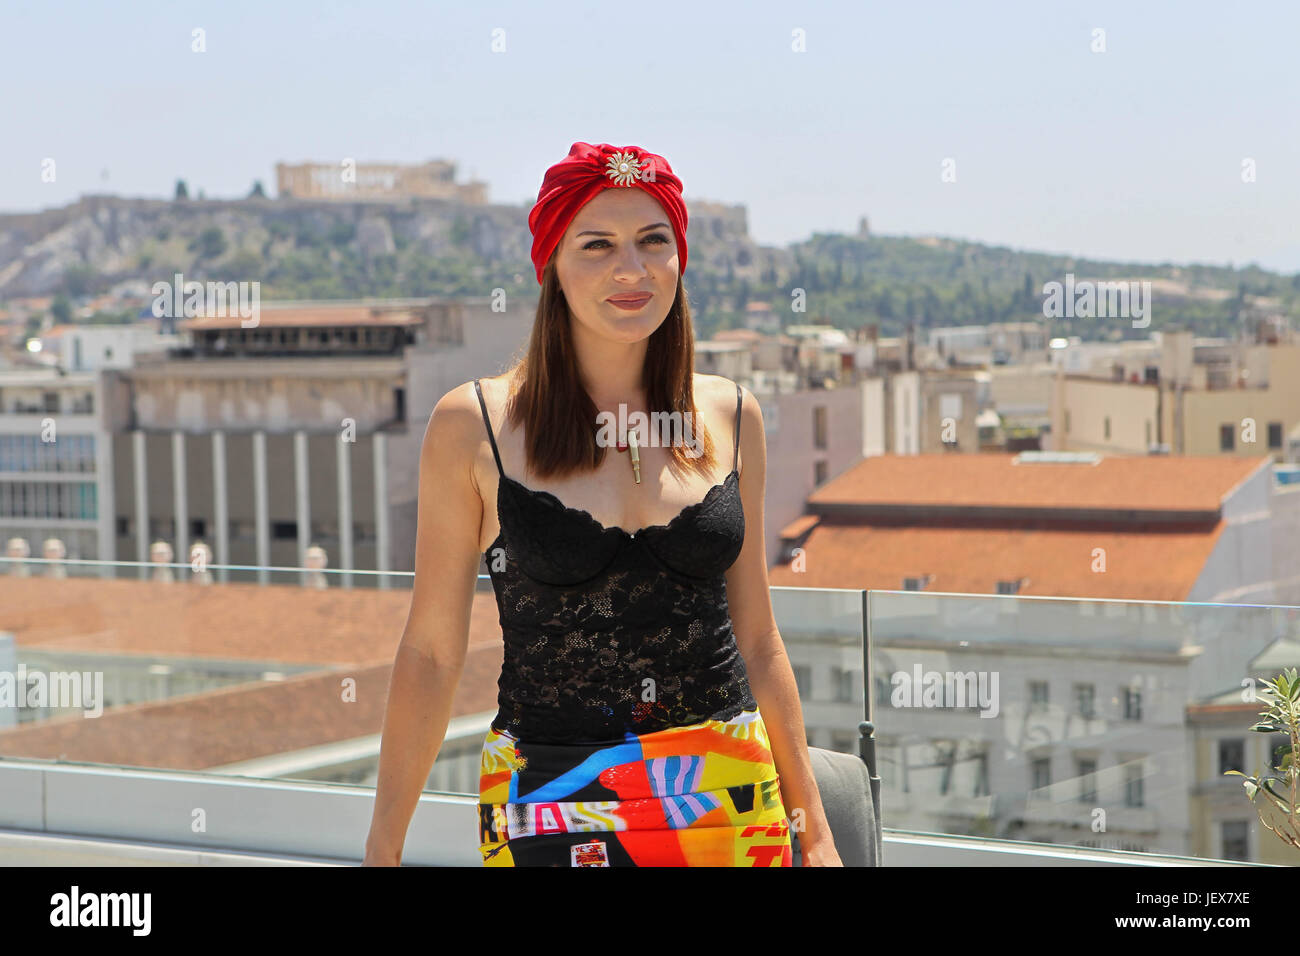 Athens, Greece. 28th June, 2017. American singer, songwriter, burlesque performer, and comedienne, Ariana Savalas - Stock Image